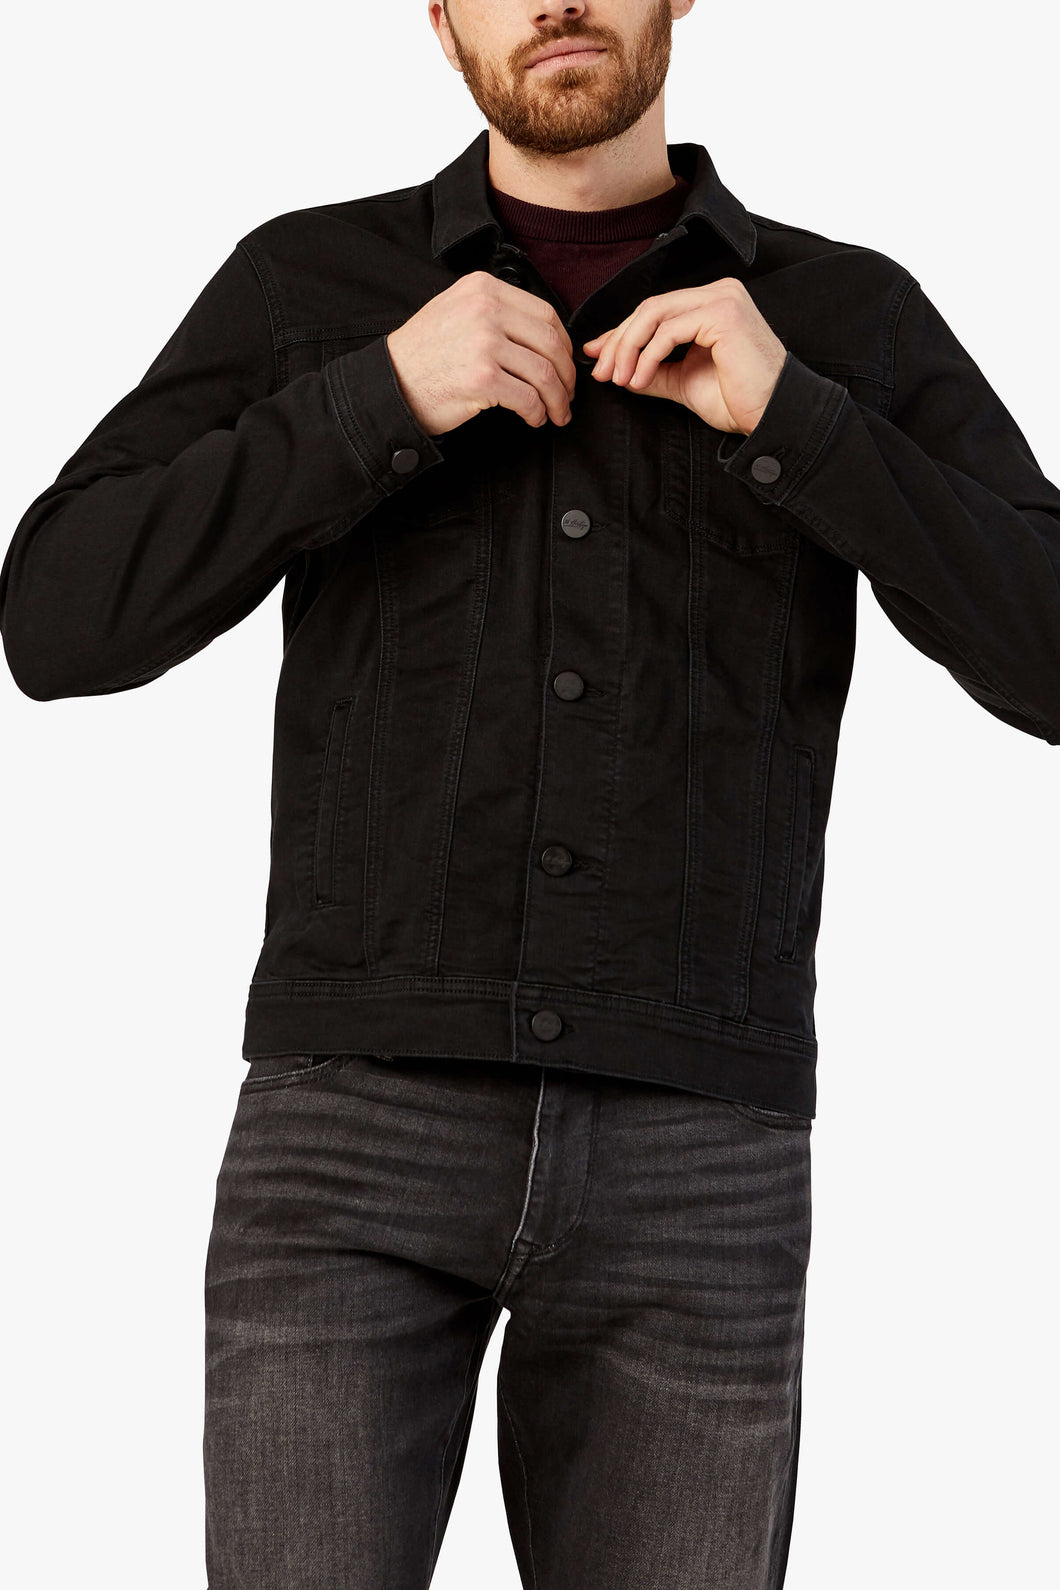 man is wearing a black brushed denim jean jacket that is fitted